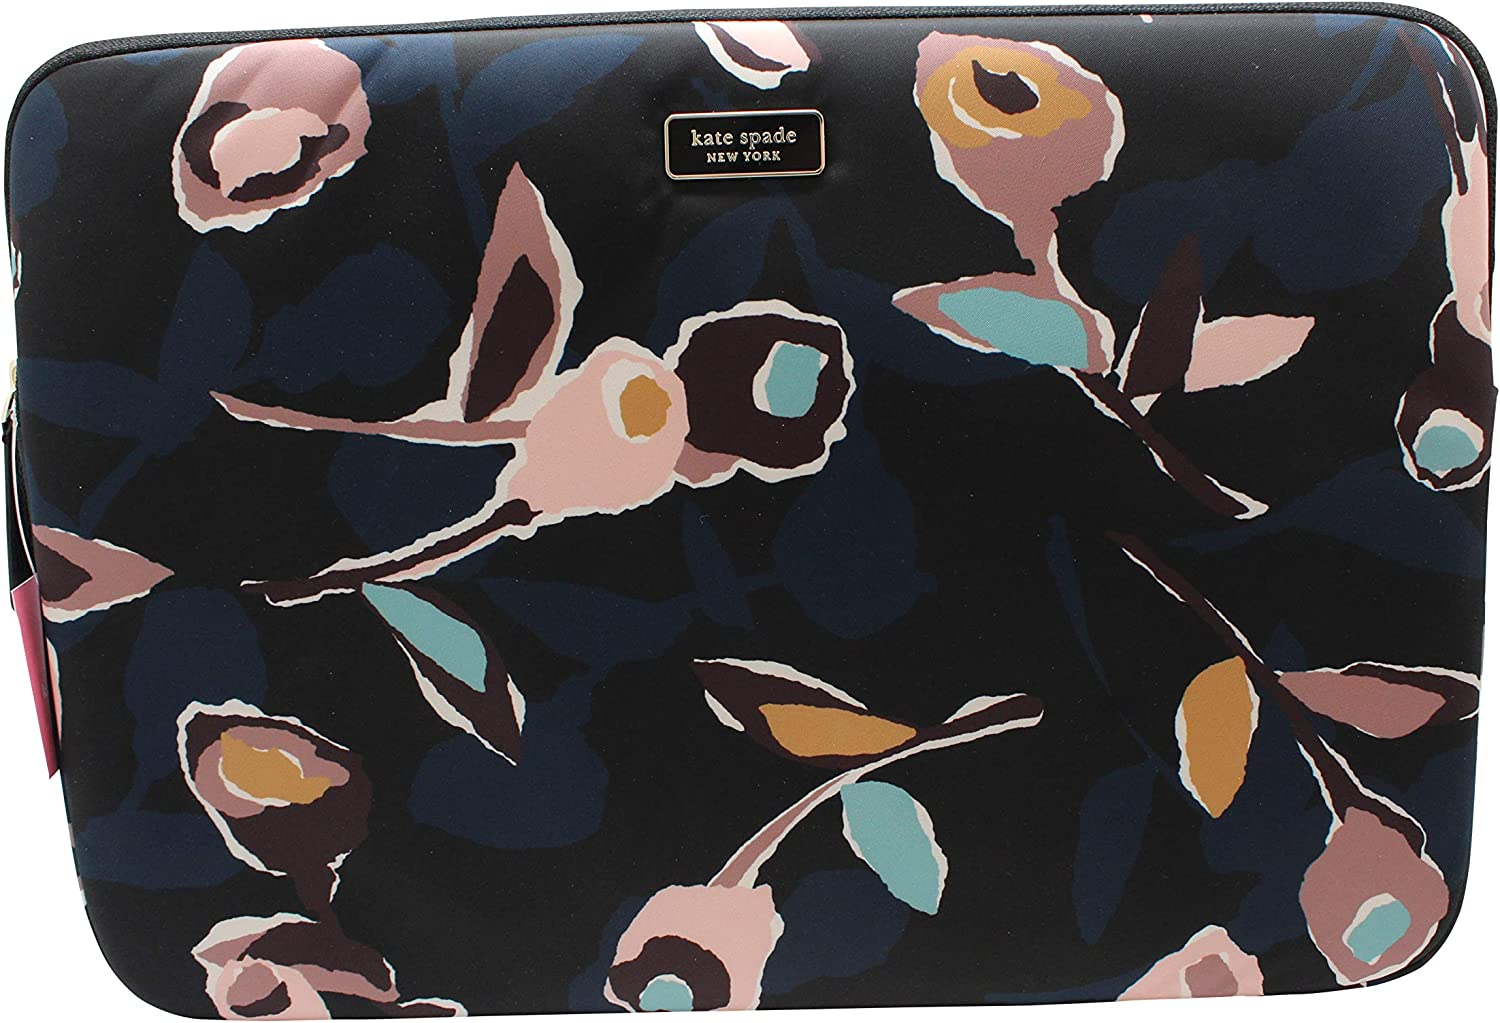 Kate Spade New York Dawn Rose Laptop Case Sleeve Black Multi 13